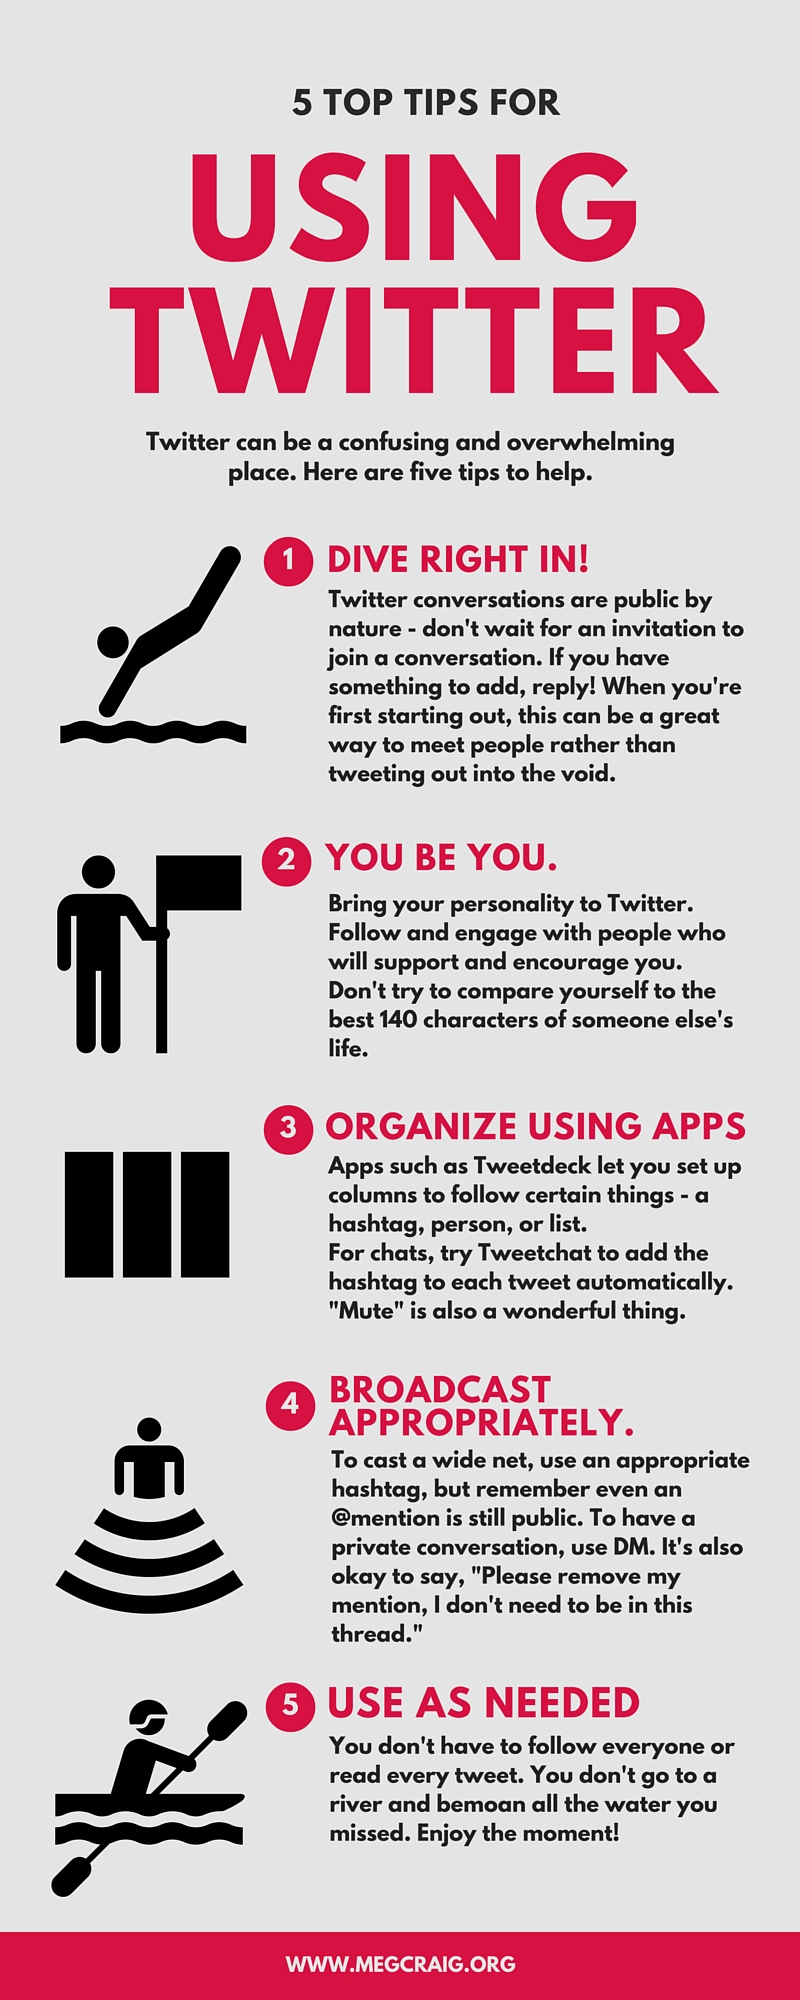 5 Top Tips for Twitter